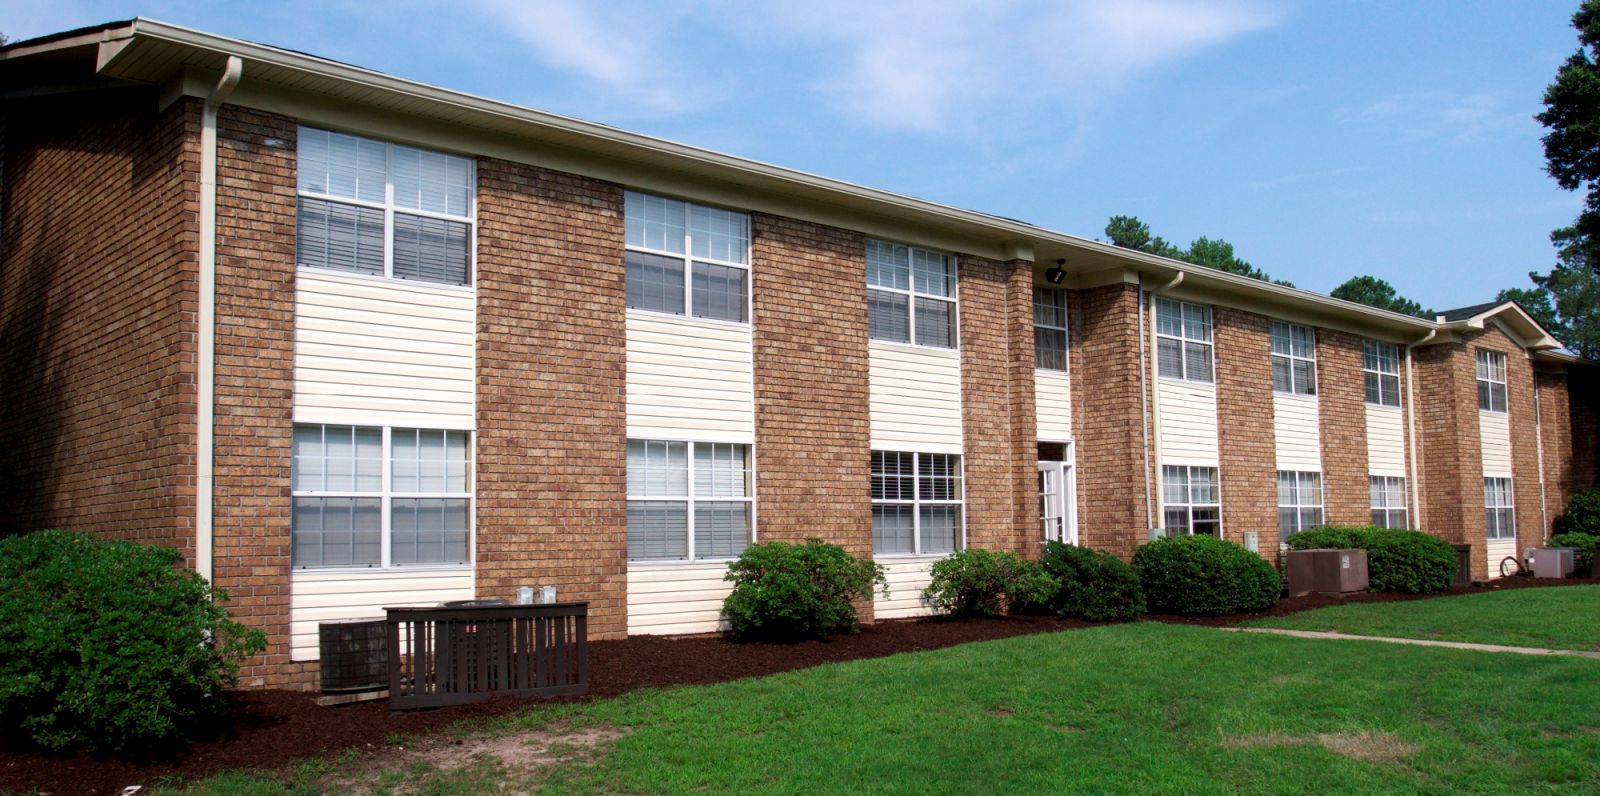 Hampton Oaks, a 160-unit apartment complex on Rivers Avenue in North Charleston, sold recently for $12.775 million. (Photo/Provided)